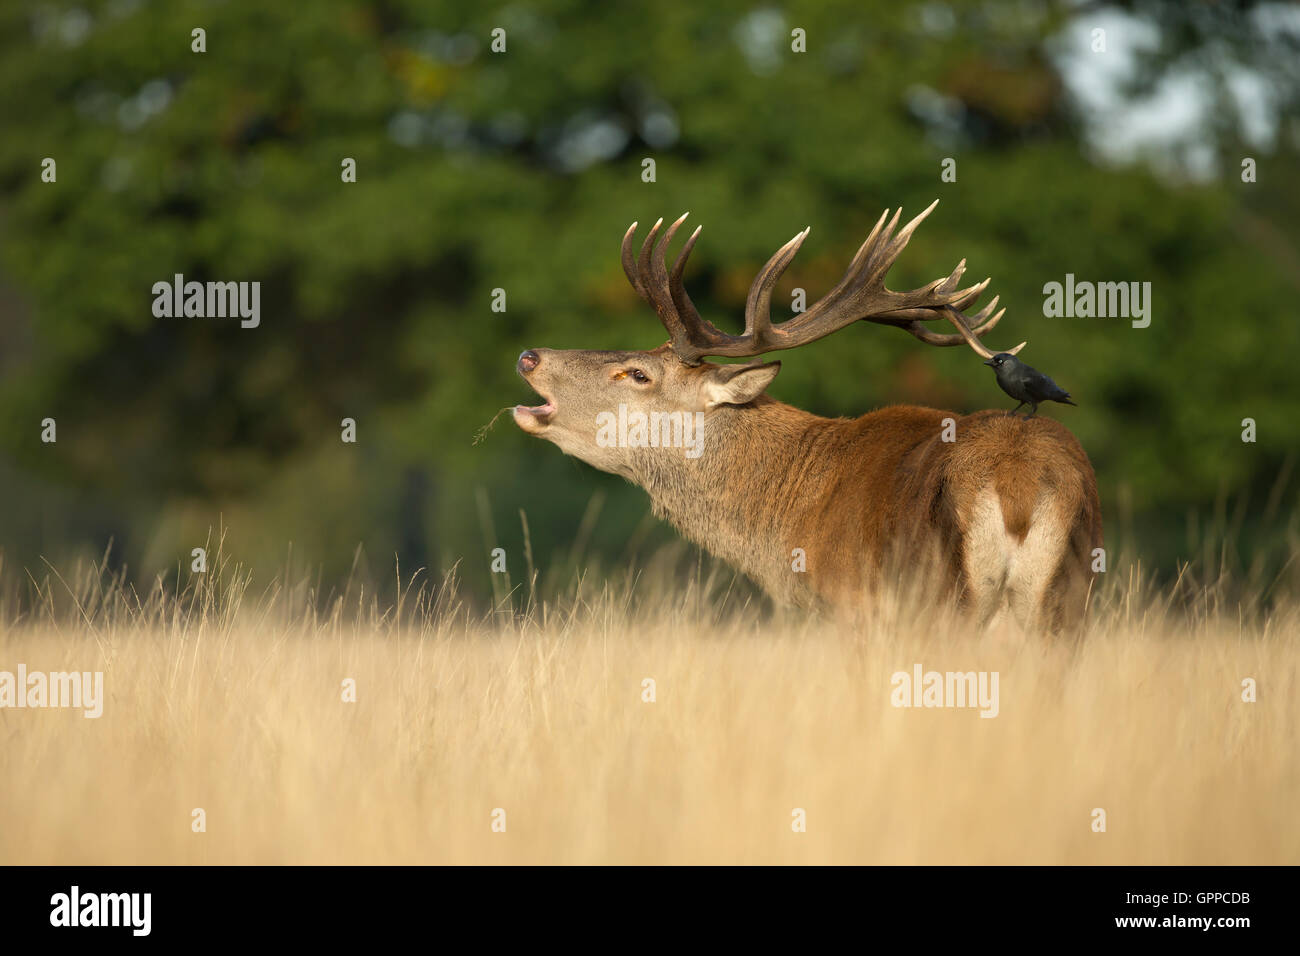 Red deer stag roaring with a Jackdaw on his back - Stock Image